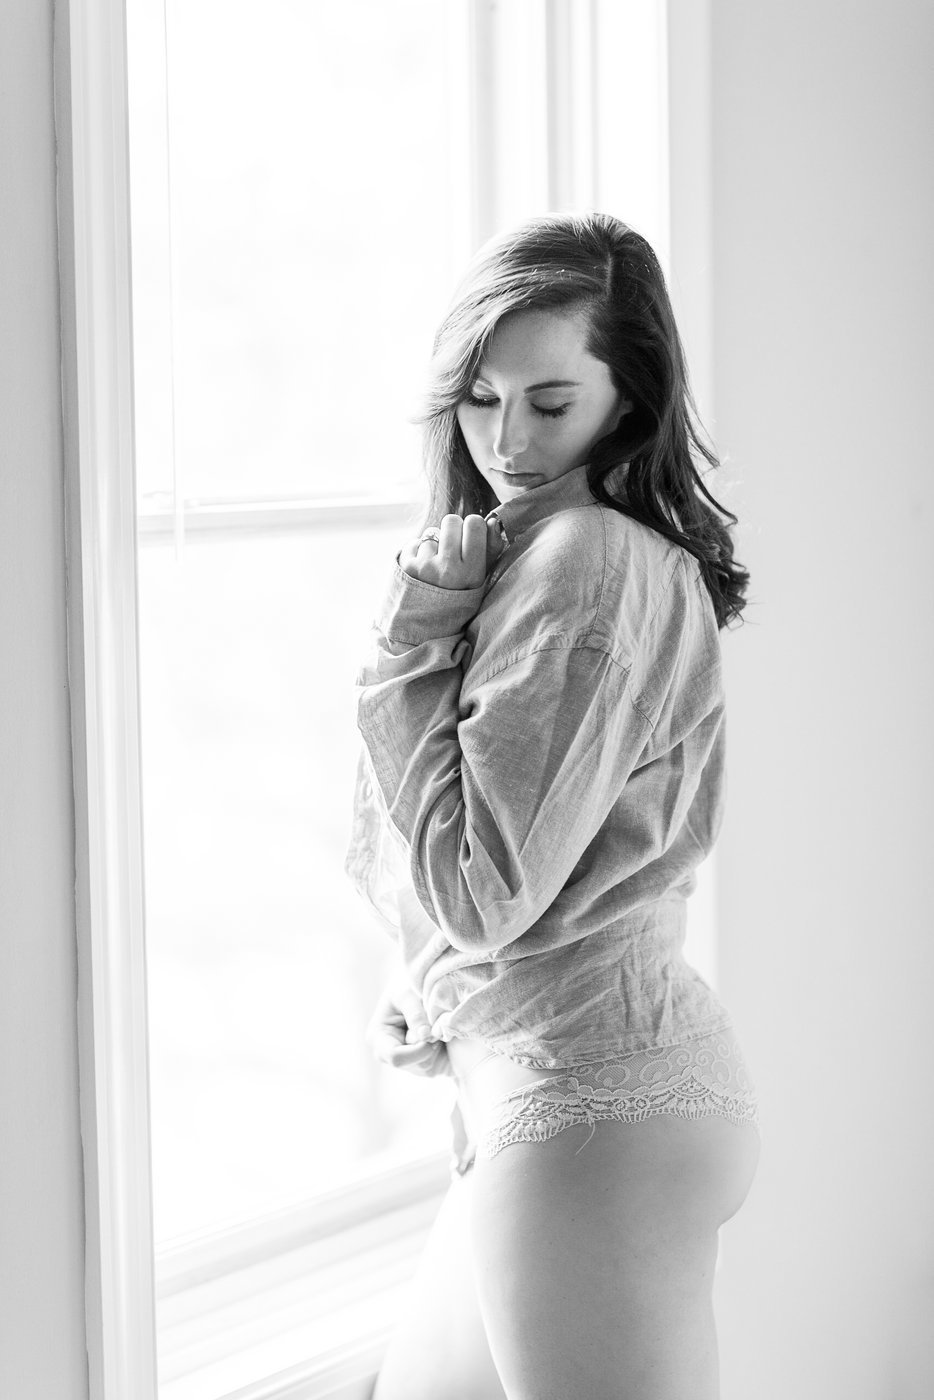 Roanoke-Bridal-Boudoir-Photos_Roanoke-Boudoir-Photographer_Jessica-Green-Pho (8)